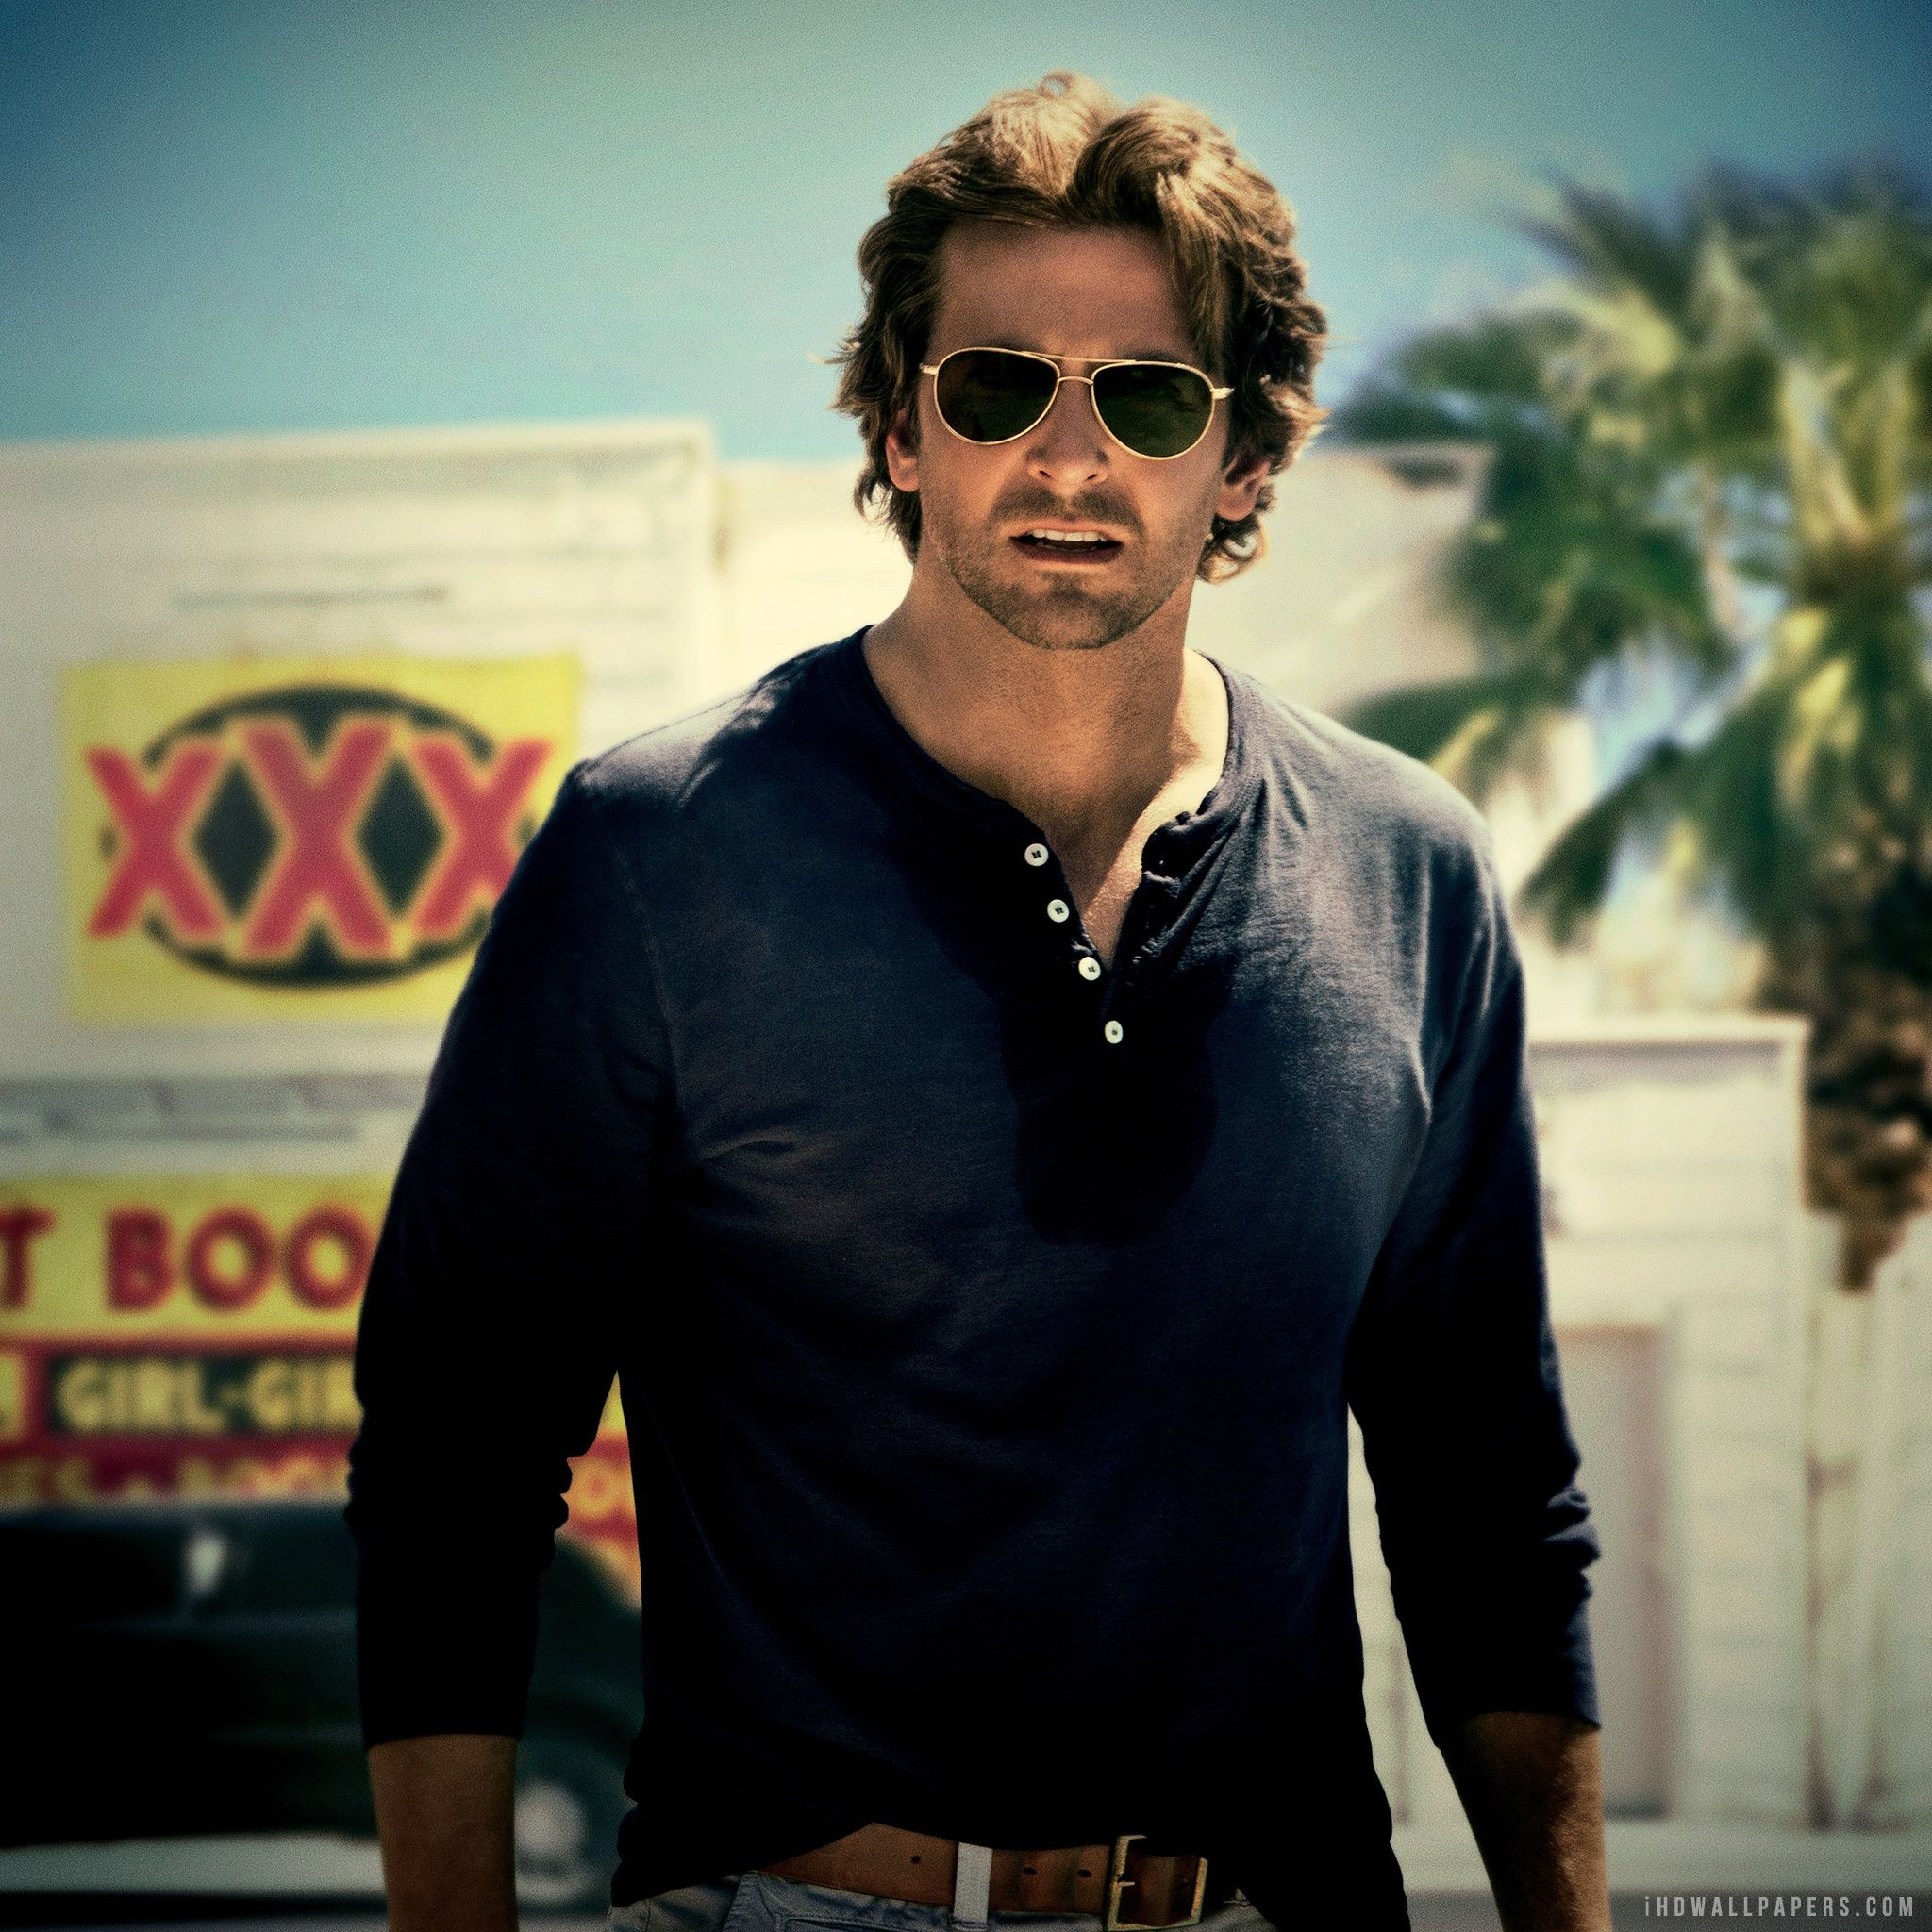 Bradley Cooper Hangover 3 iPad Wallpaper HD #iPad #wallpaper